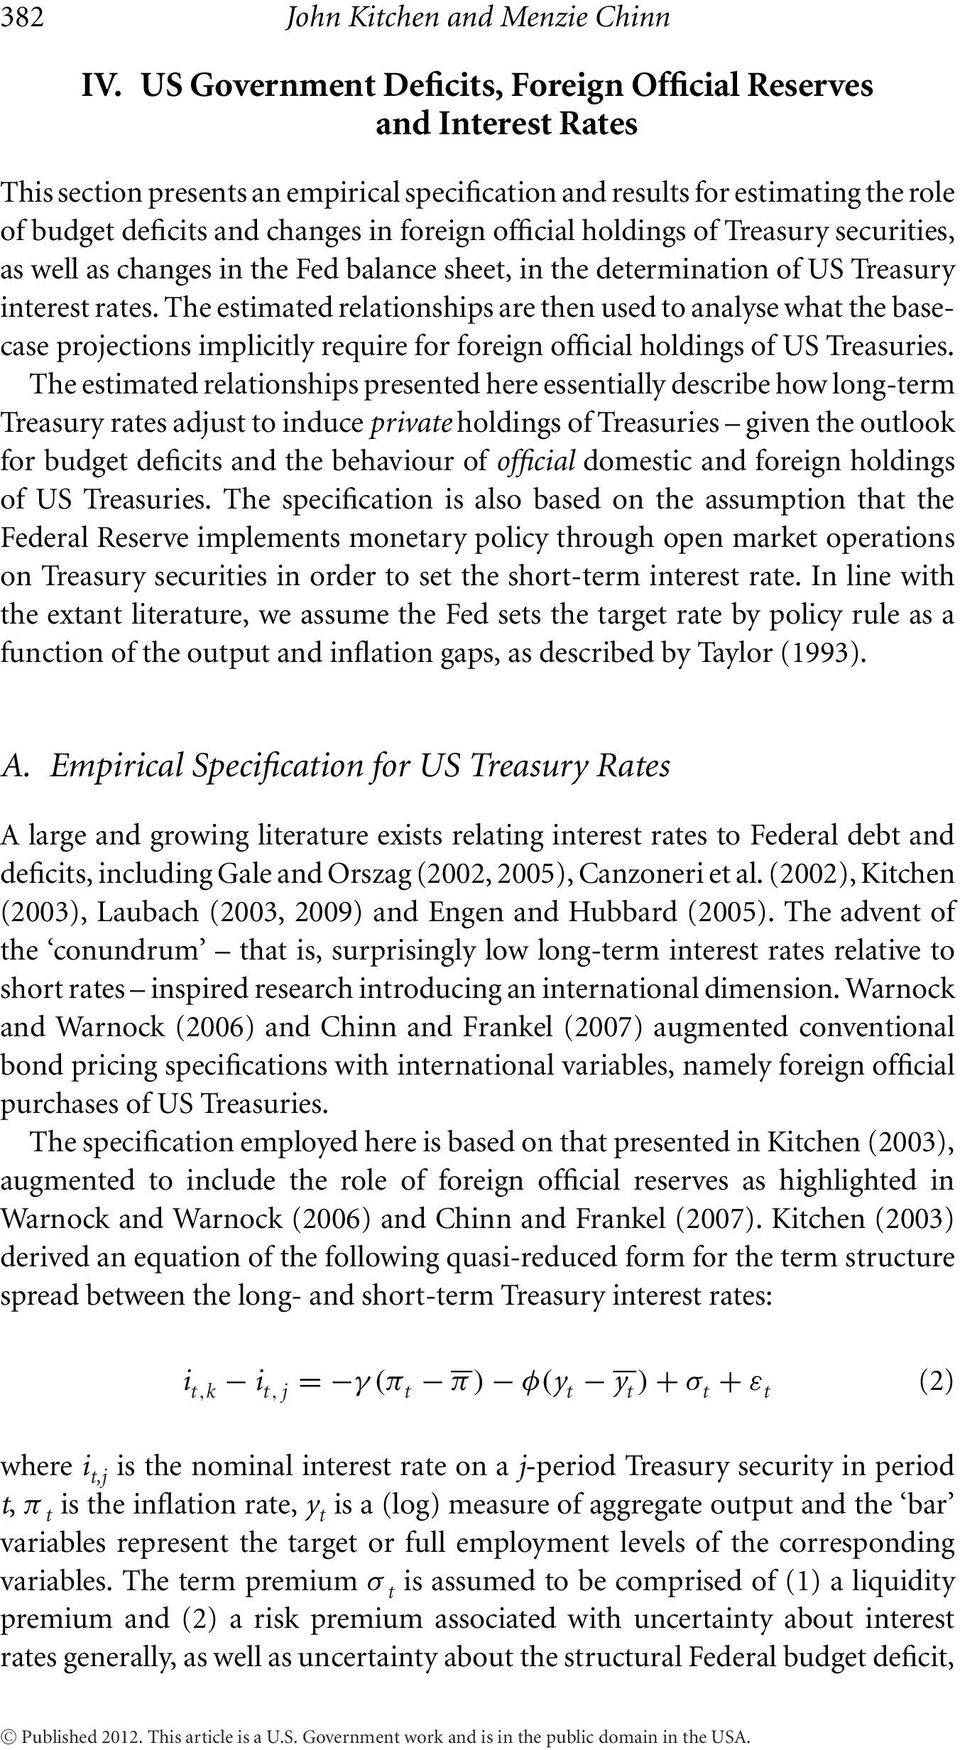 official holdings of Treasury securities, as well as changes in the Fed balance sheet, in the determination of US Treasury interest rates.